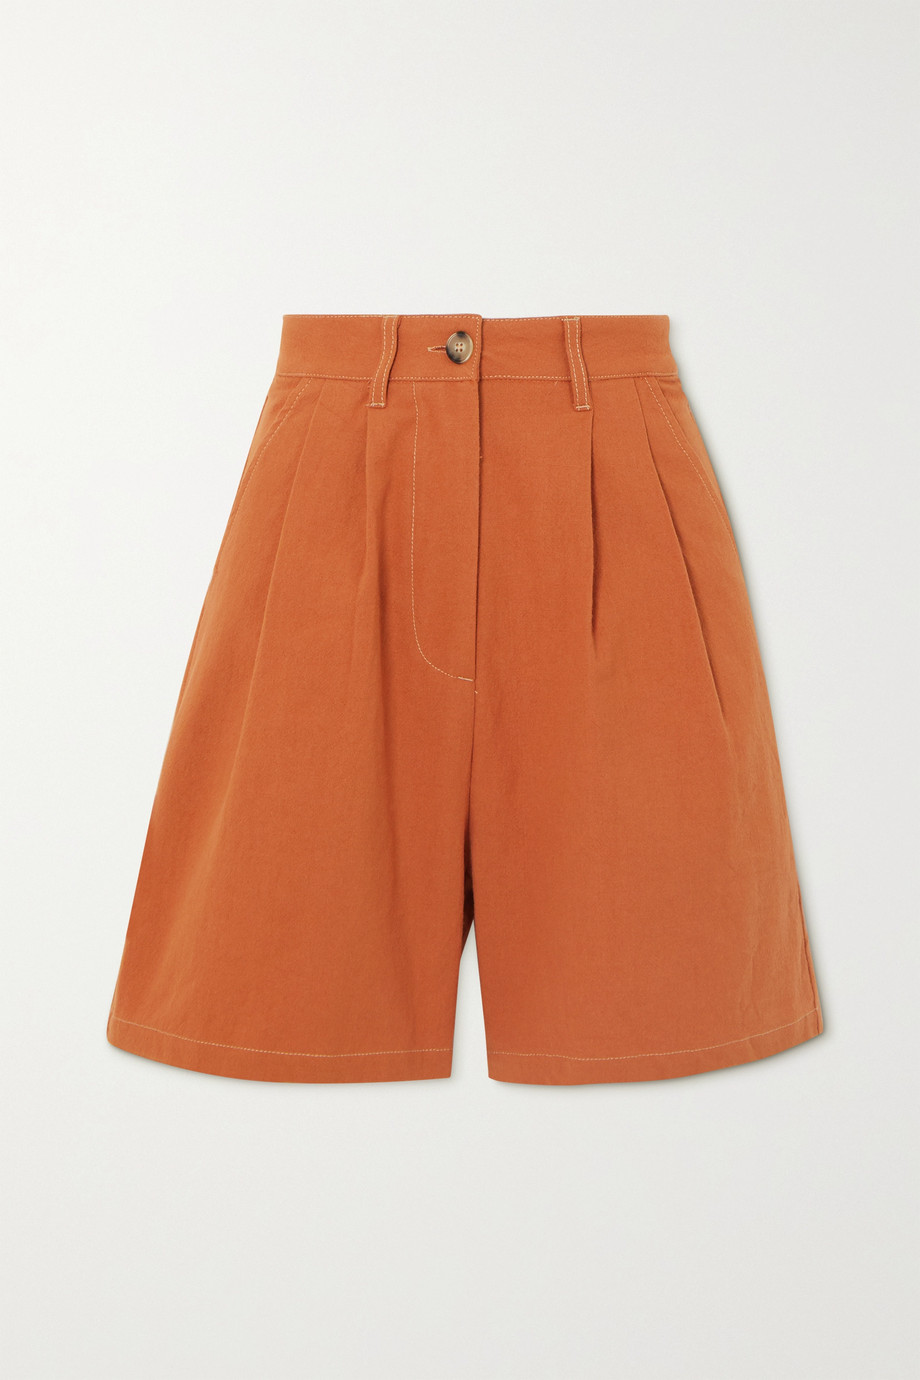 L.F.Markey Henry pleated cotton shorts